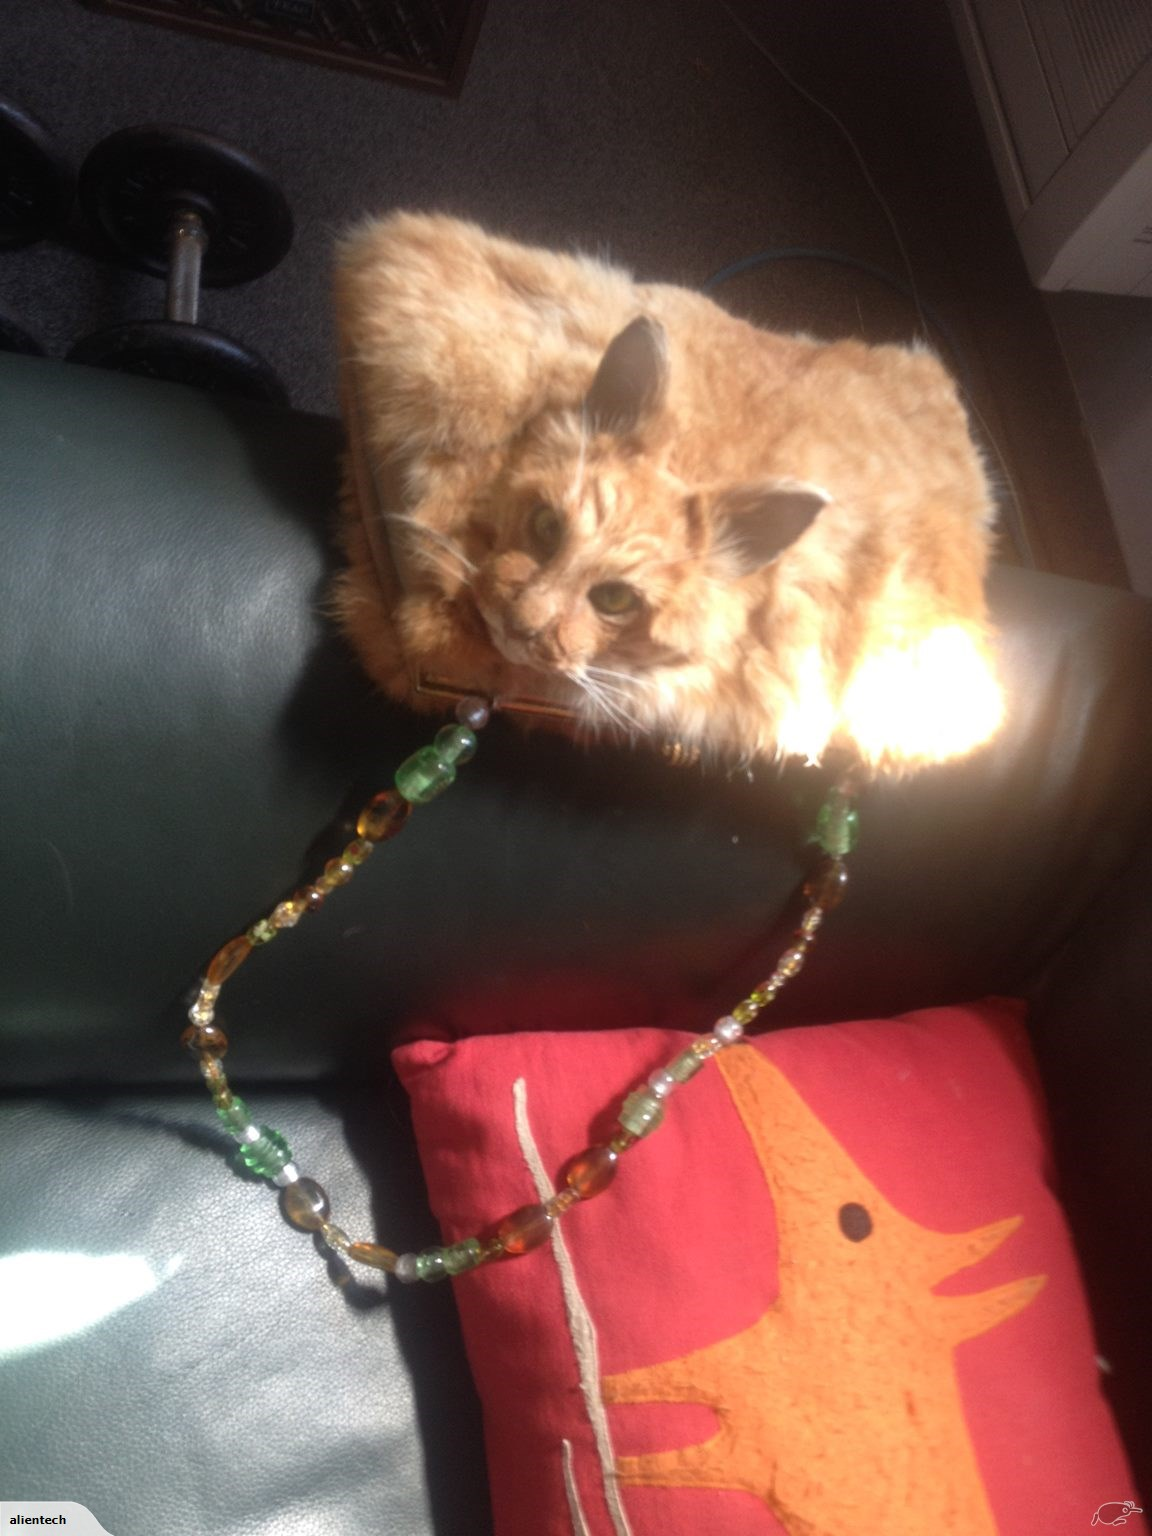 The purse made from a dead cat.